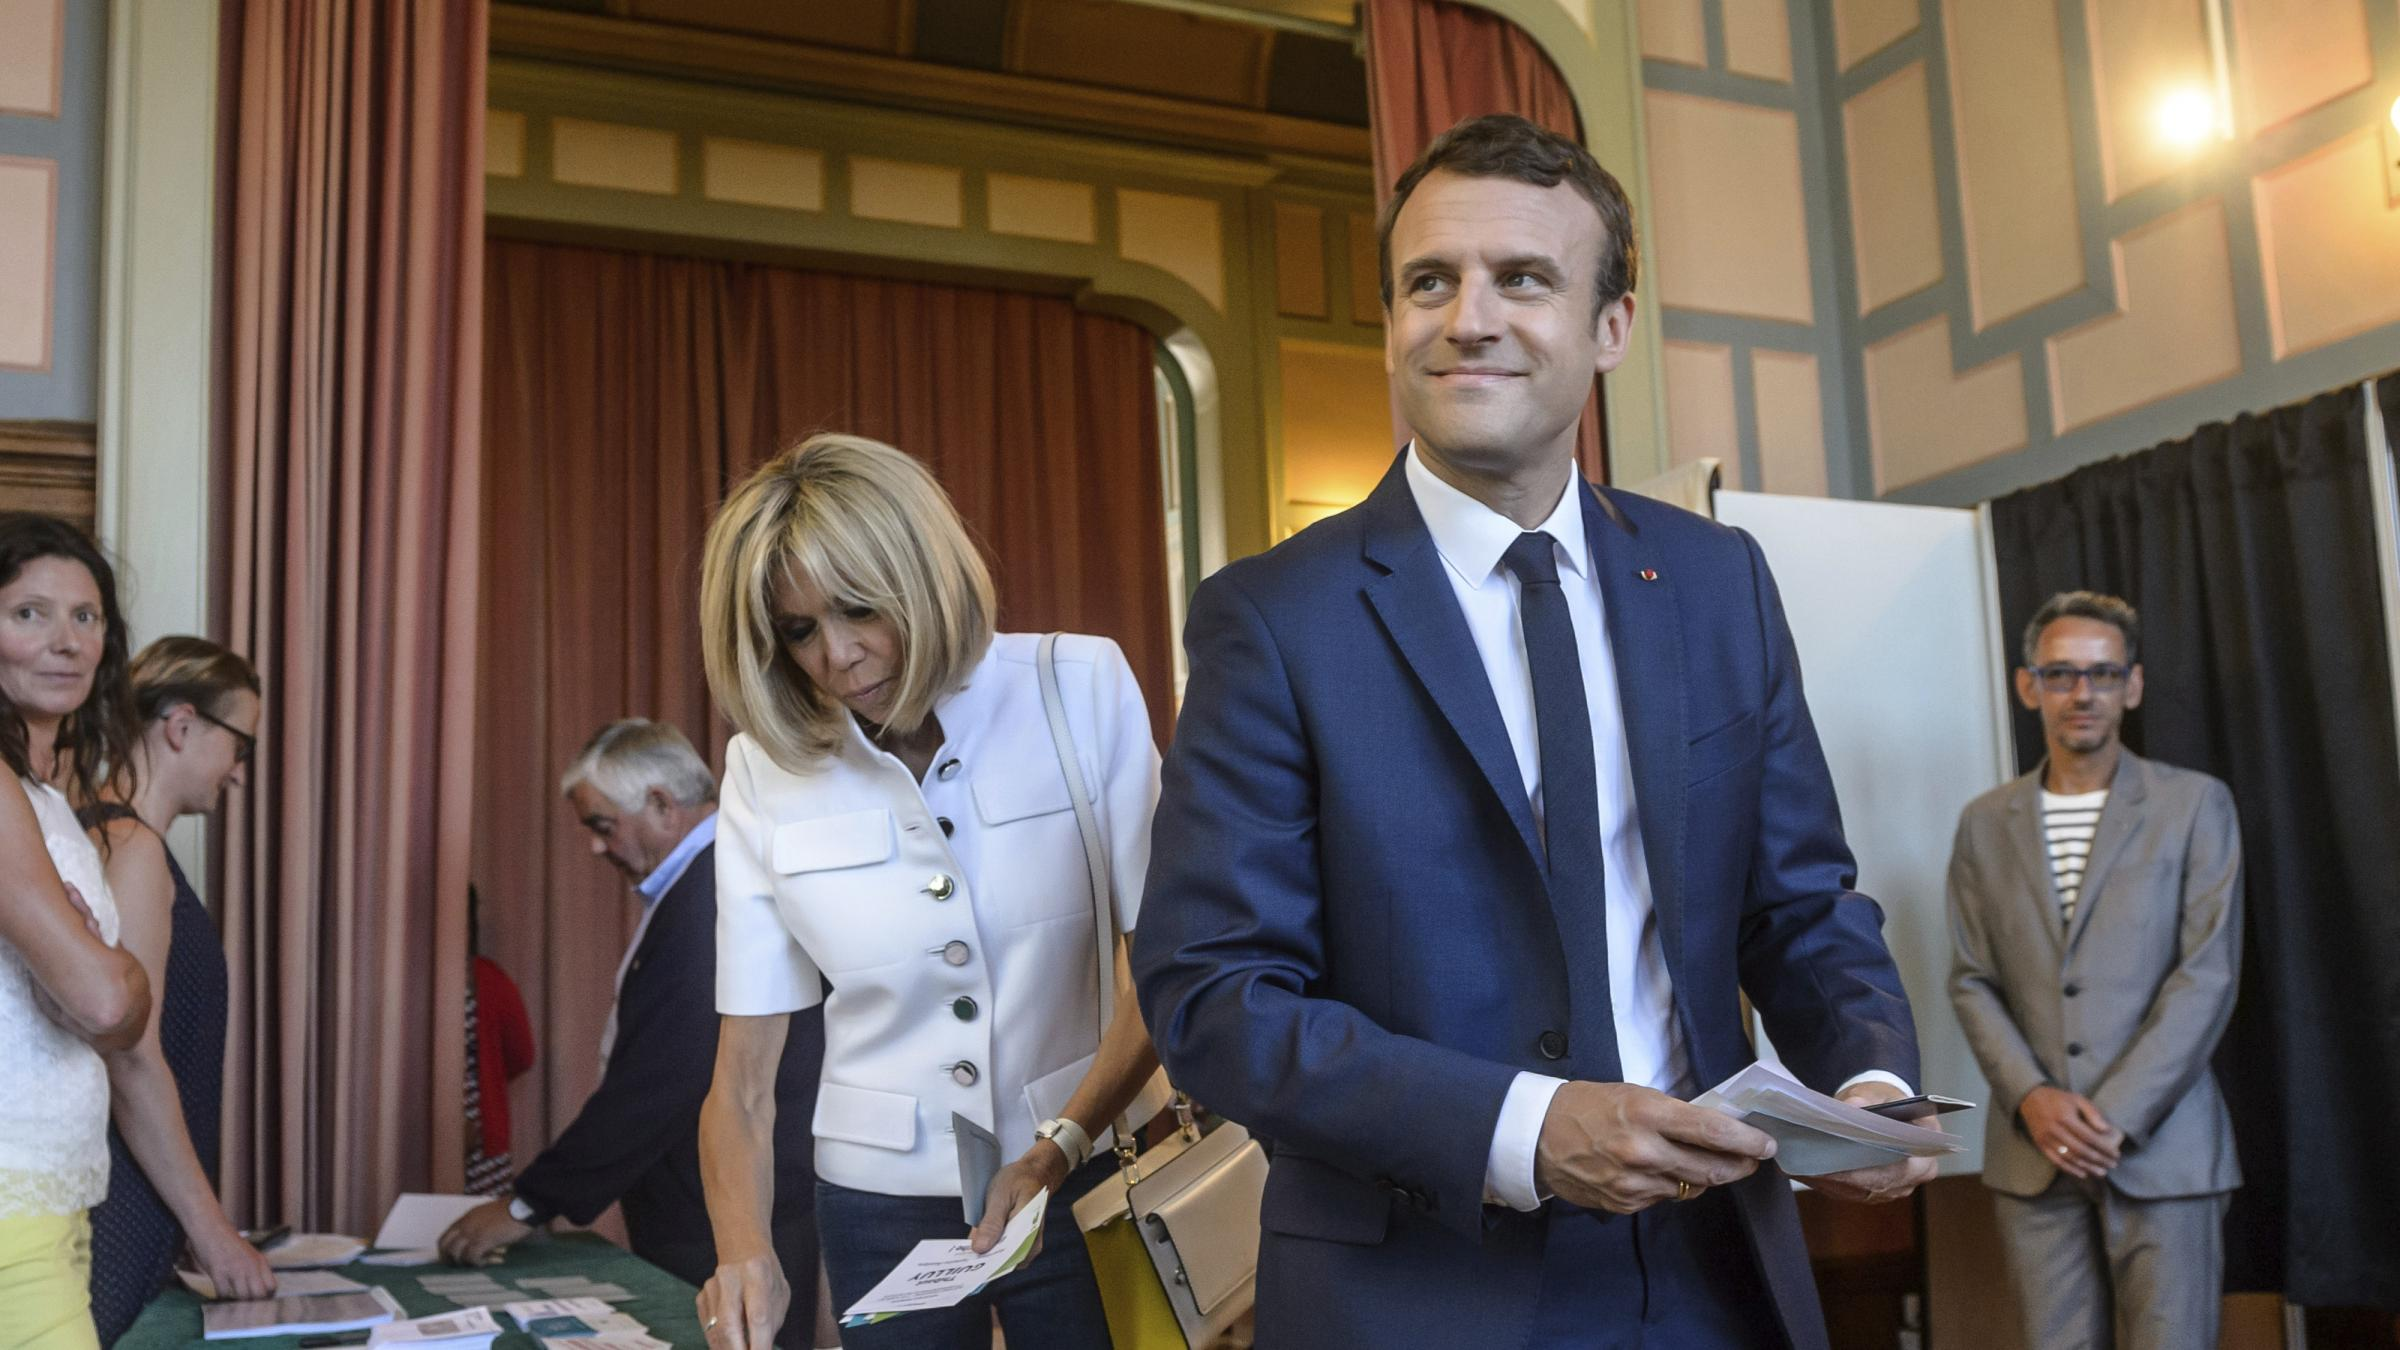 Emmanuel Macron's party sweeps French parliamentary election